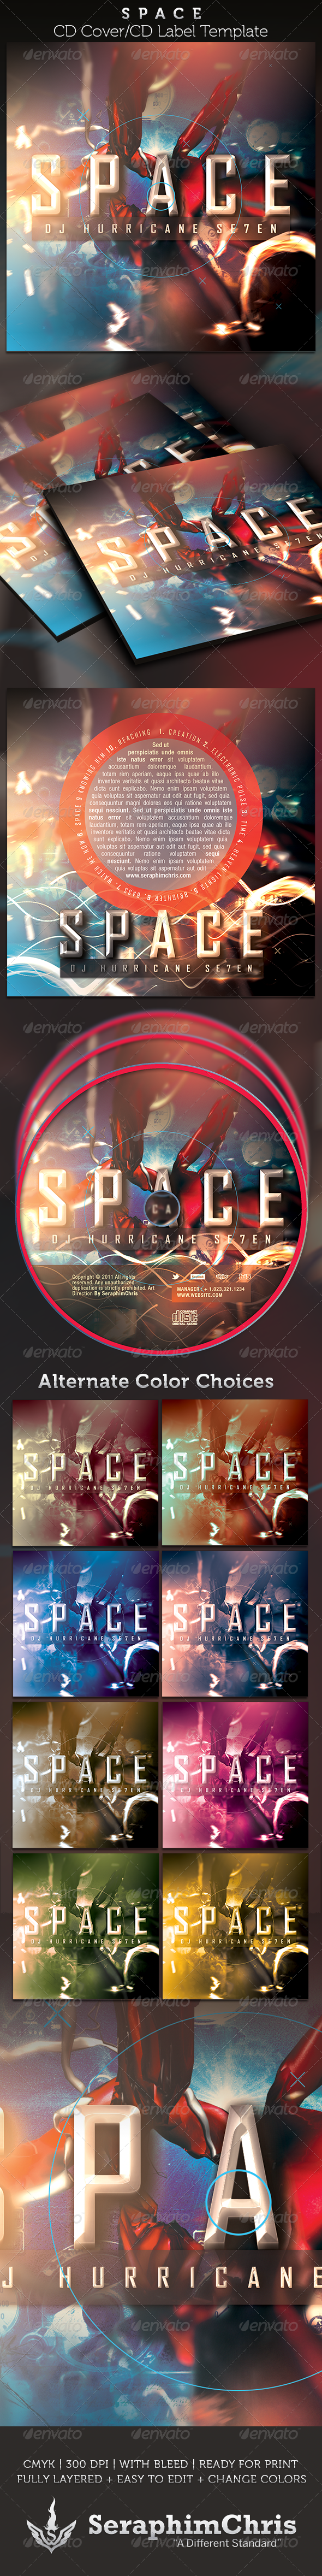 Space CD Cover Artwork Template - CD & DVD artwork Print Templates